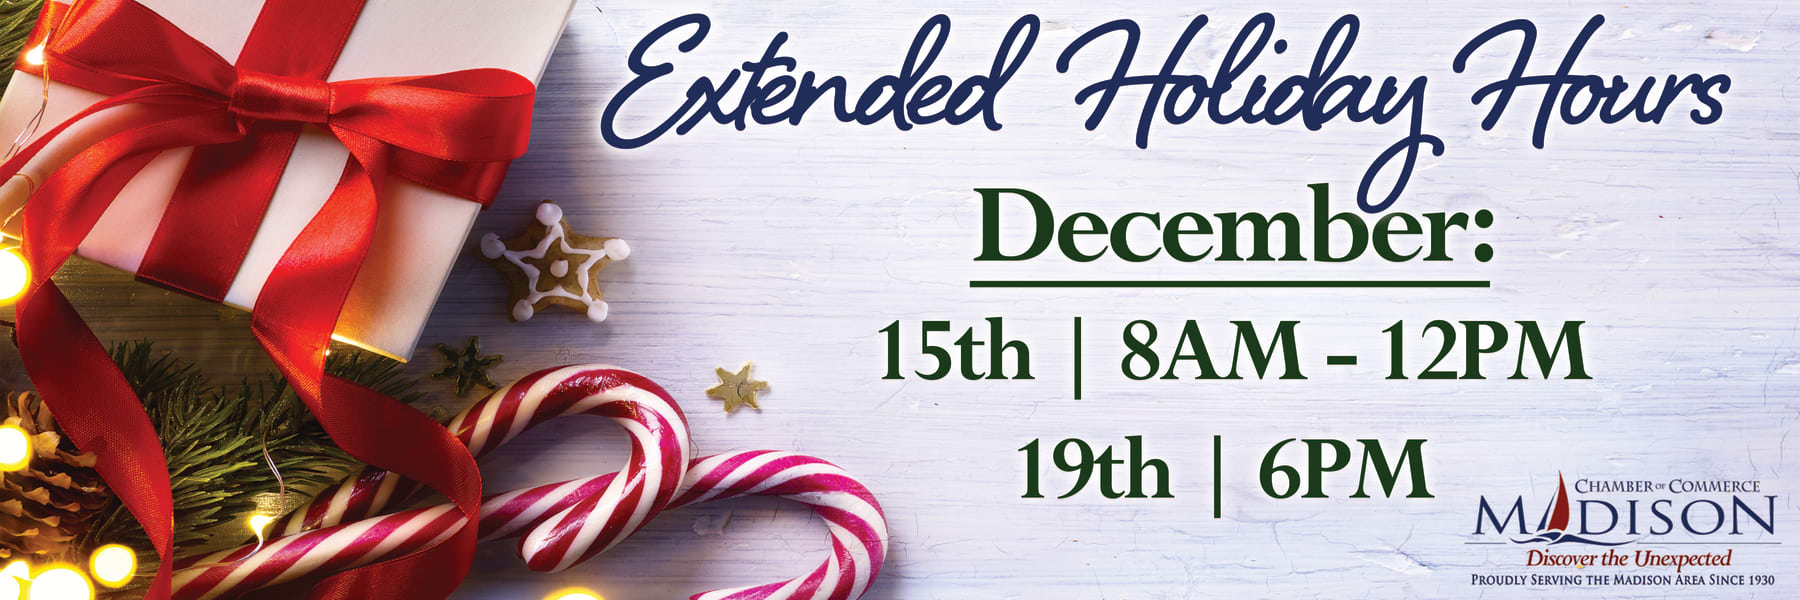 2018-Holiday-Extended-Hours-Web-Banner(1)-w1800.jpg